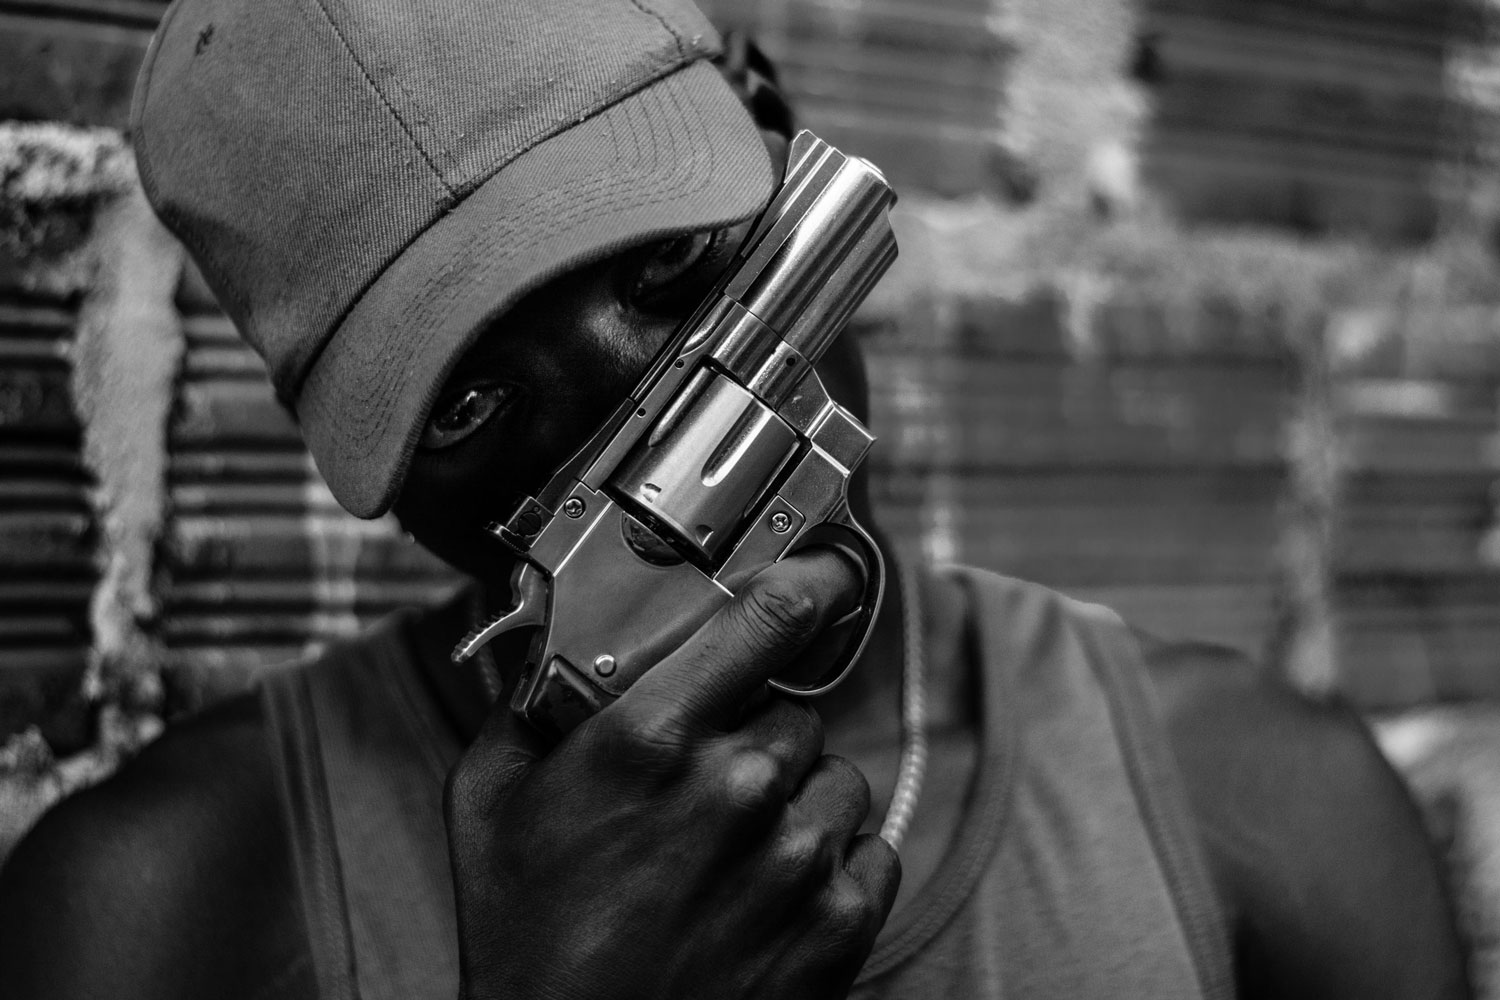 Jeison, a member of the gang 'La 33', poses with his revolver 38', which he uses to commit thefts or participate in gang clashes.